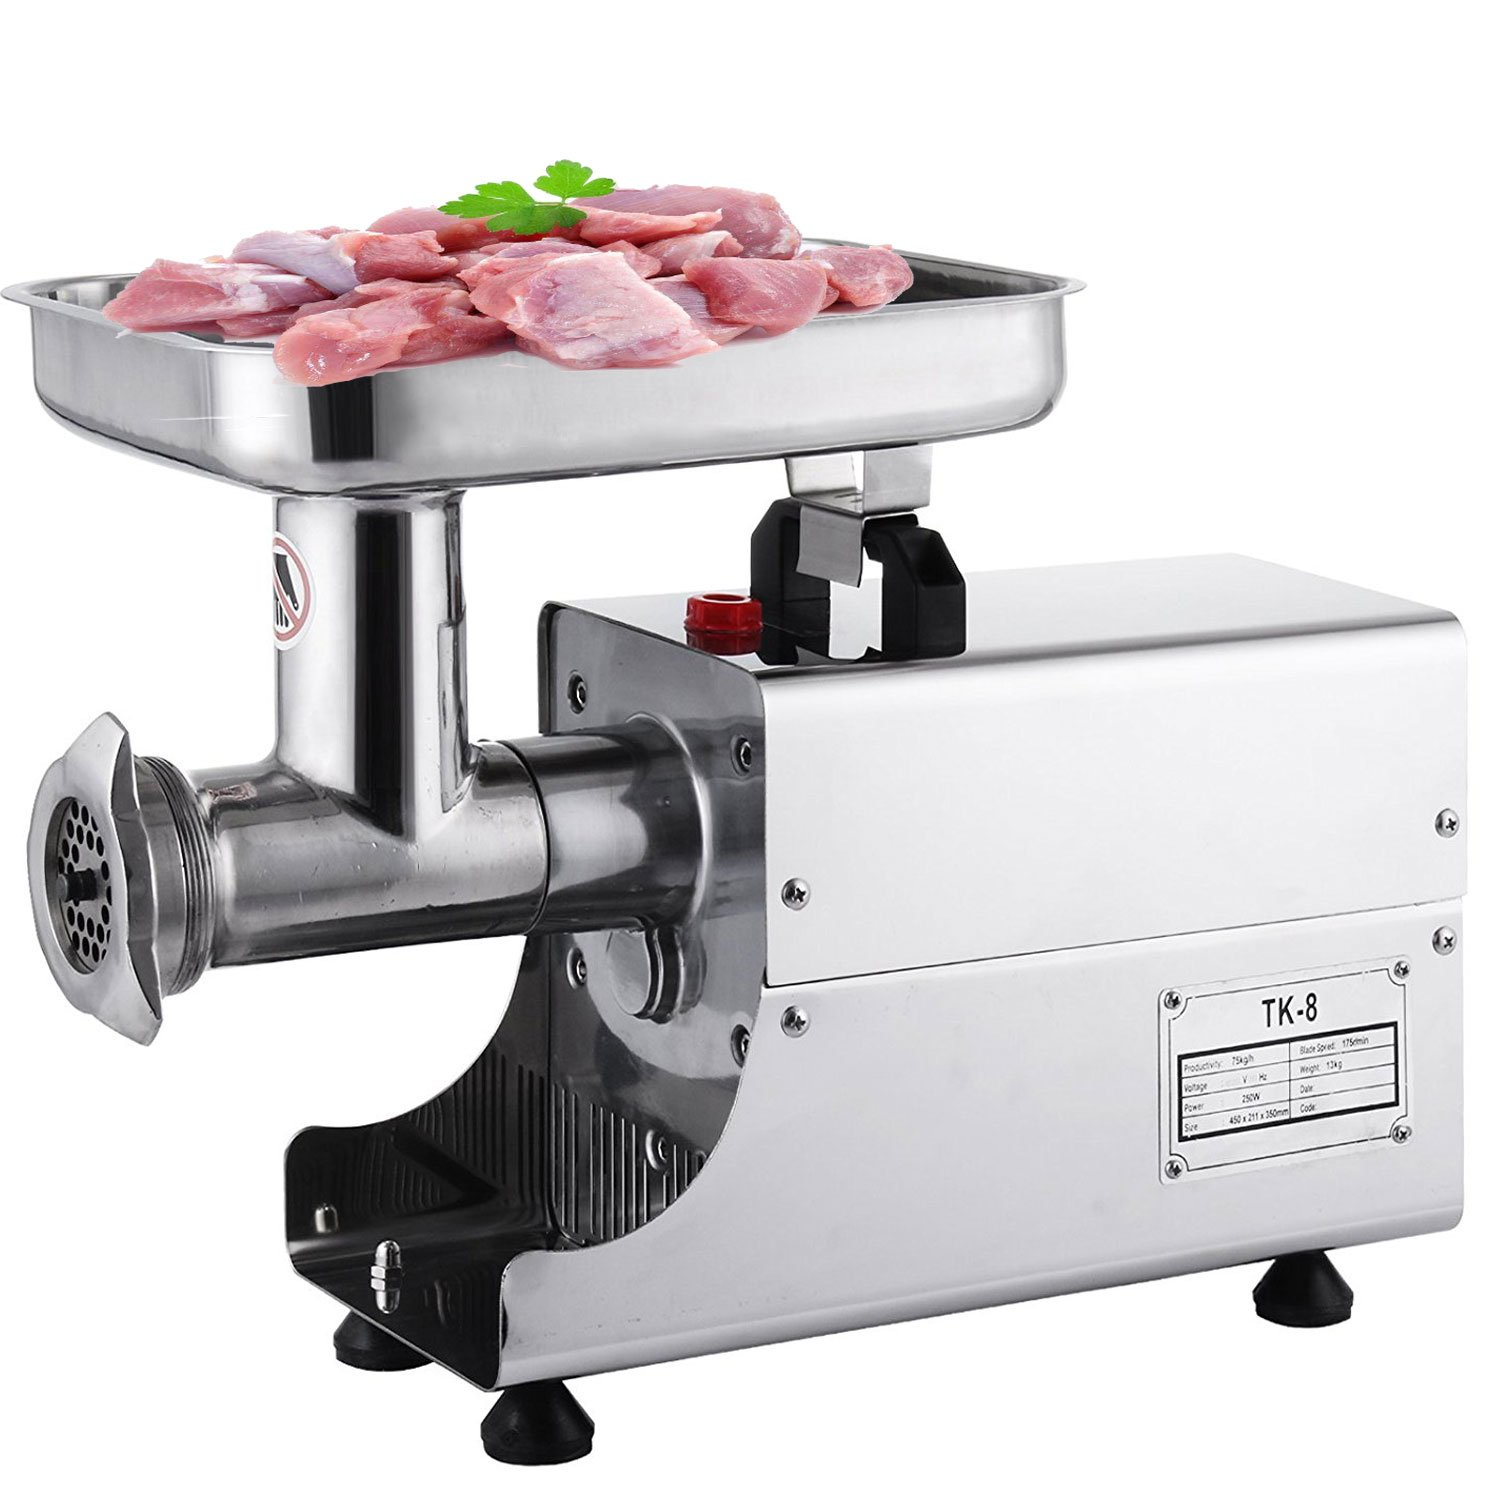 Happybuy Meat Grinder Electric 1.5HP/1100W Commercial Sausage Stuffer Maker Stainless Steel 220 RPM Maker for Industrial and Home Use (TK-8/250W)